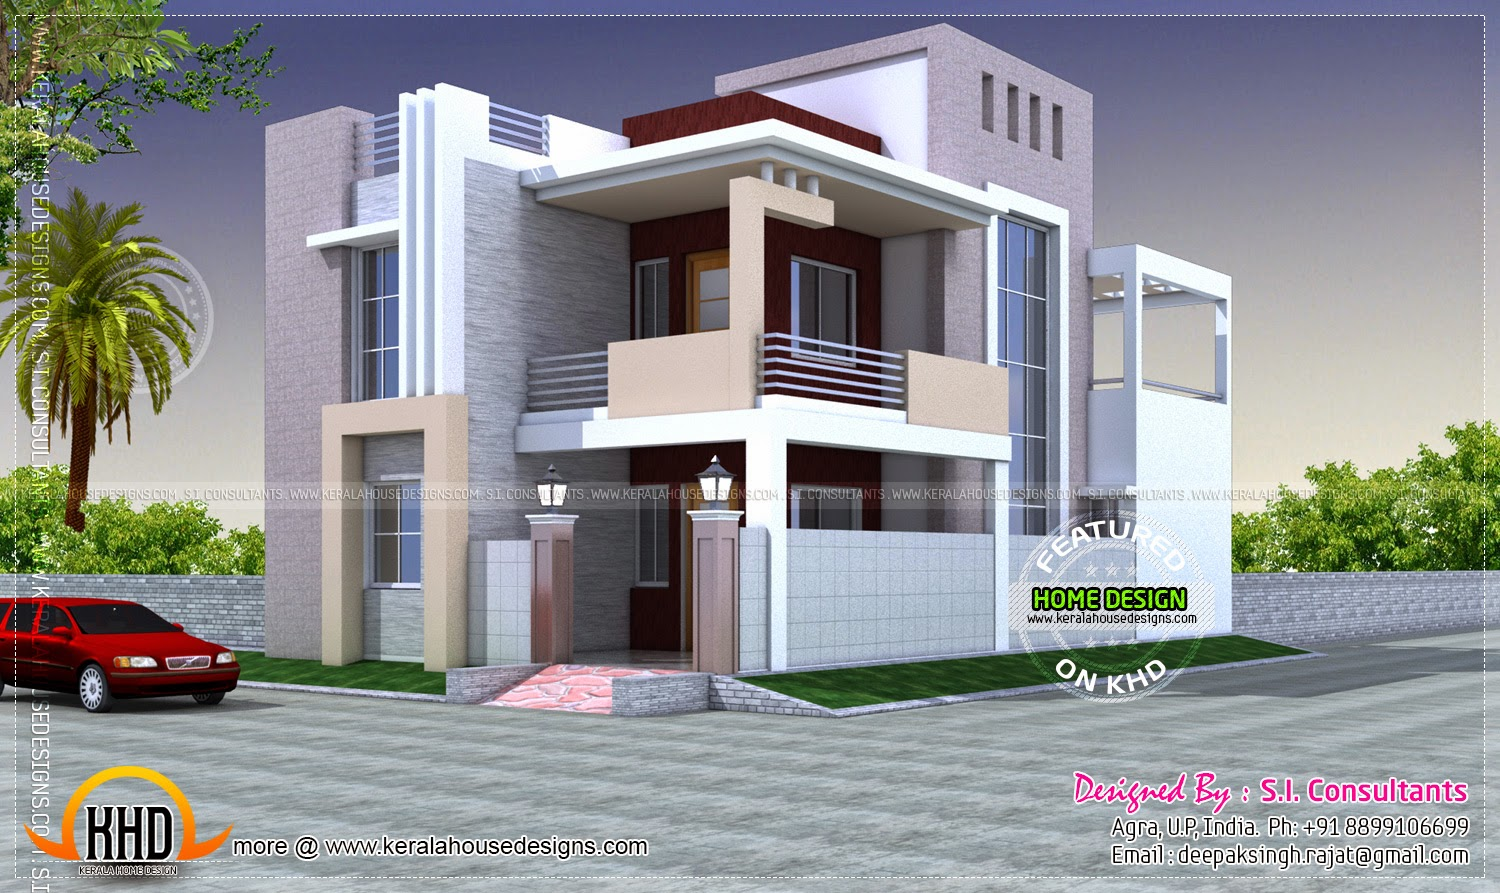 House exterior elevation modern style kerala home design for Home designs indian style